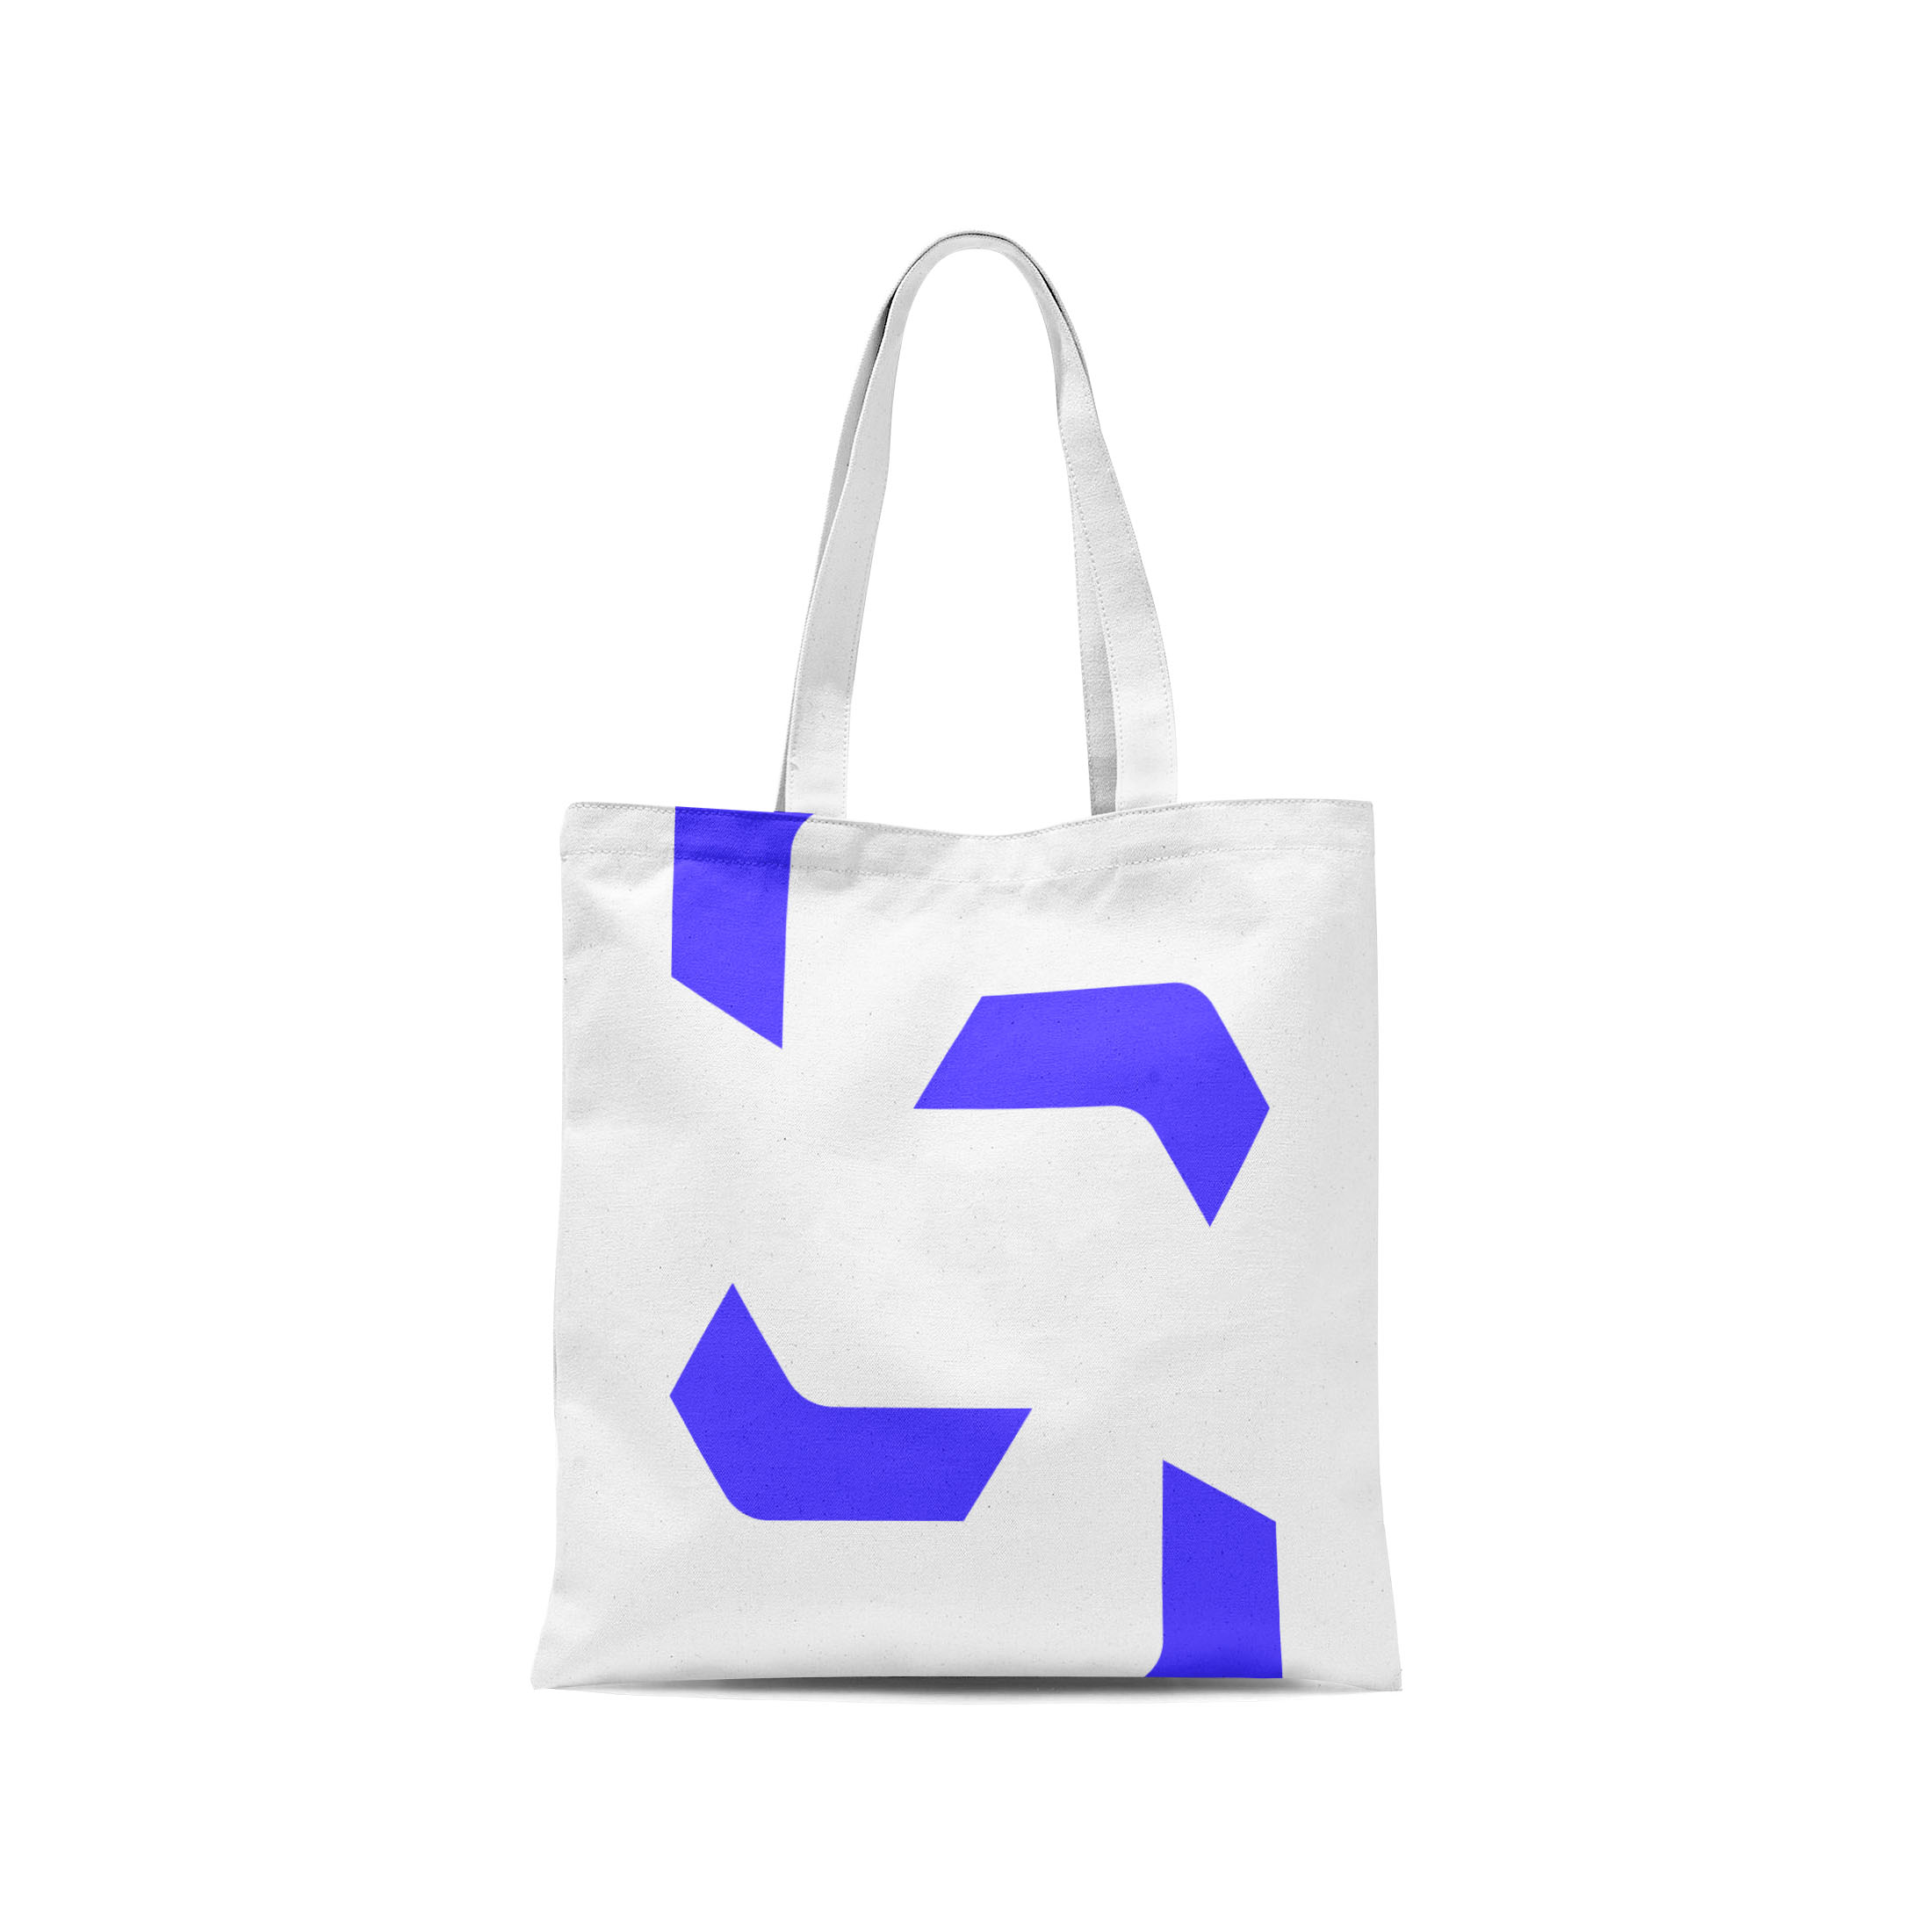 tote_bag_option1.jpg